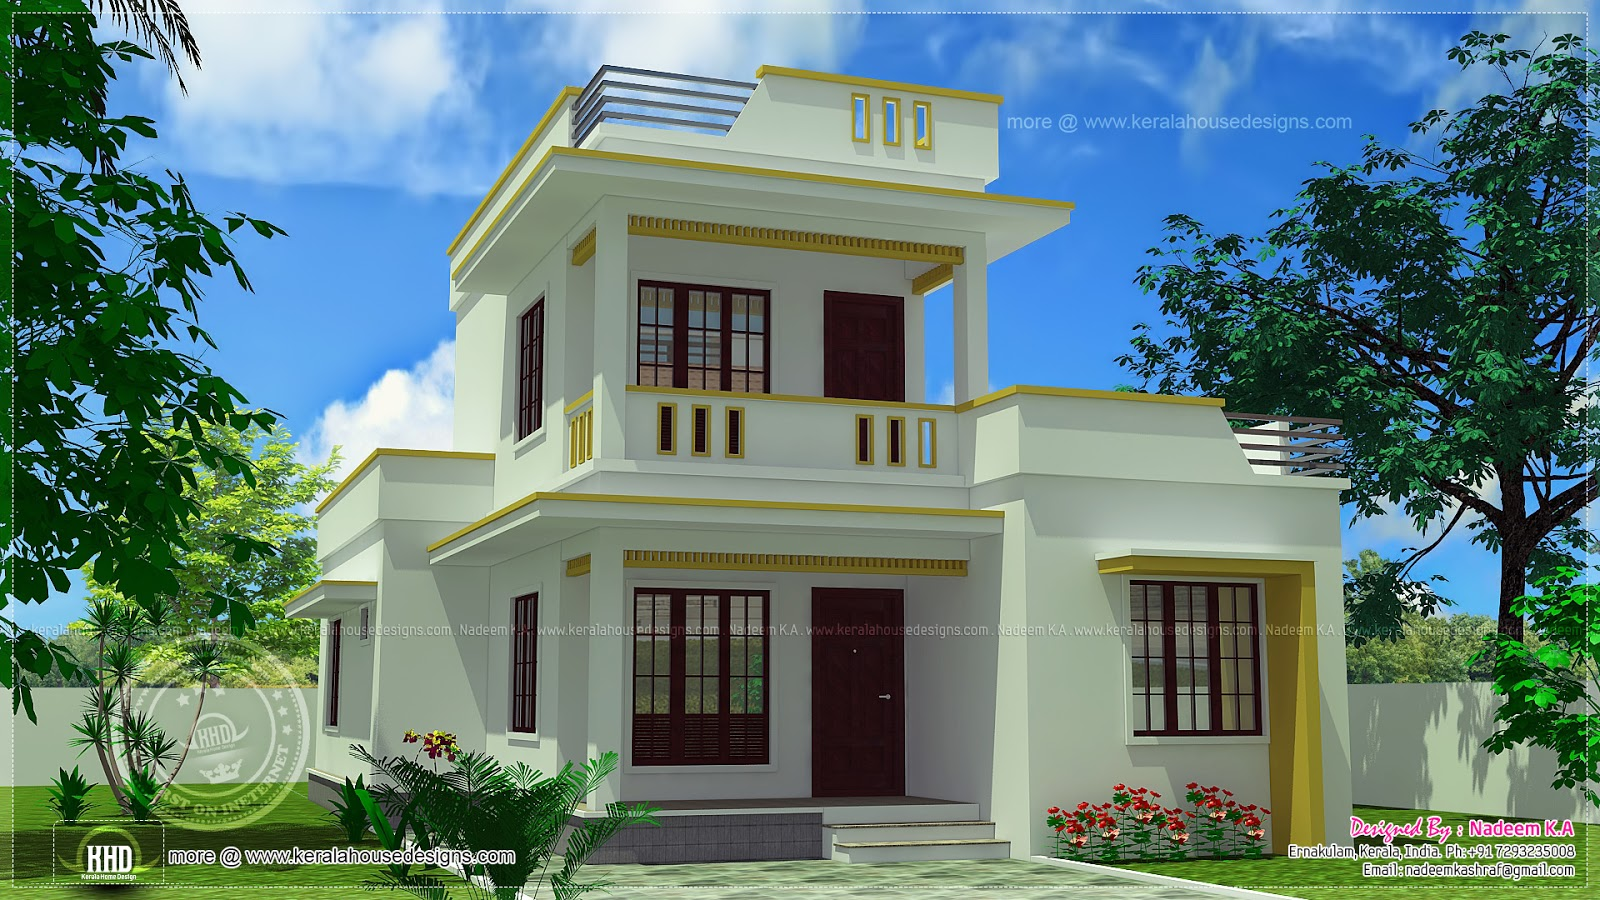 Simple House Images August 2013 Kerala Home Design And Floor Plans